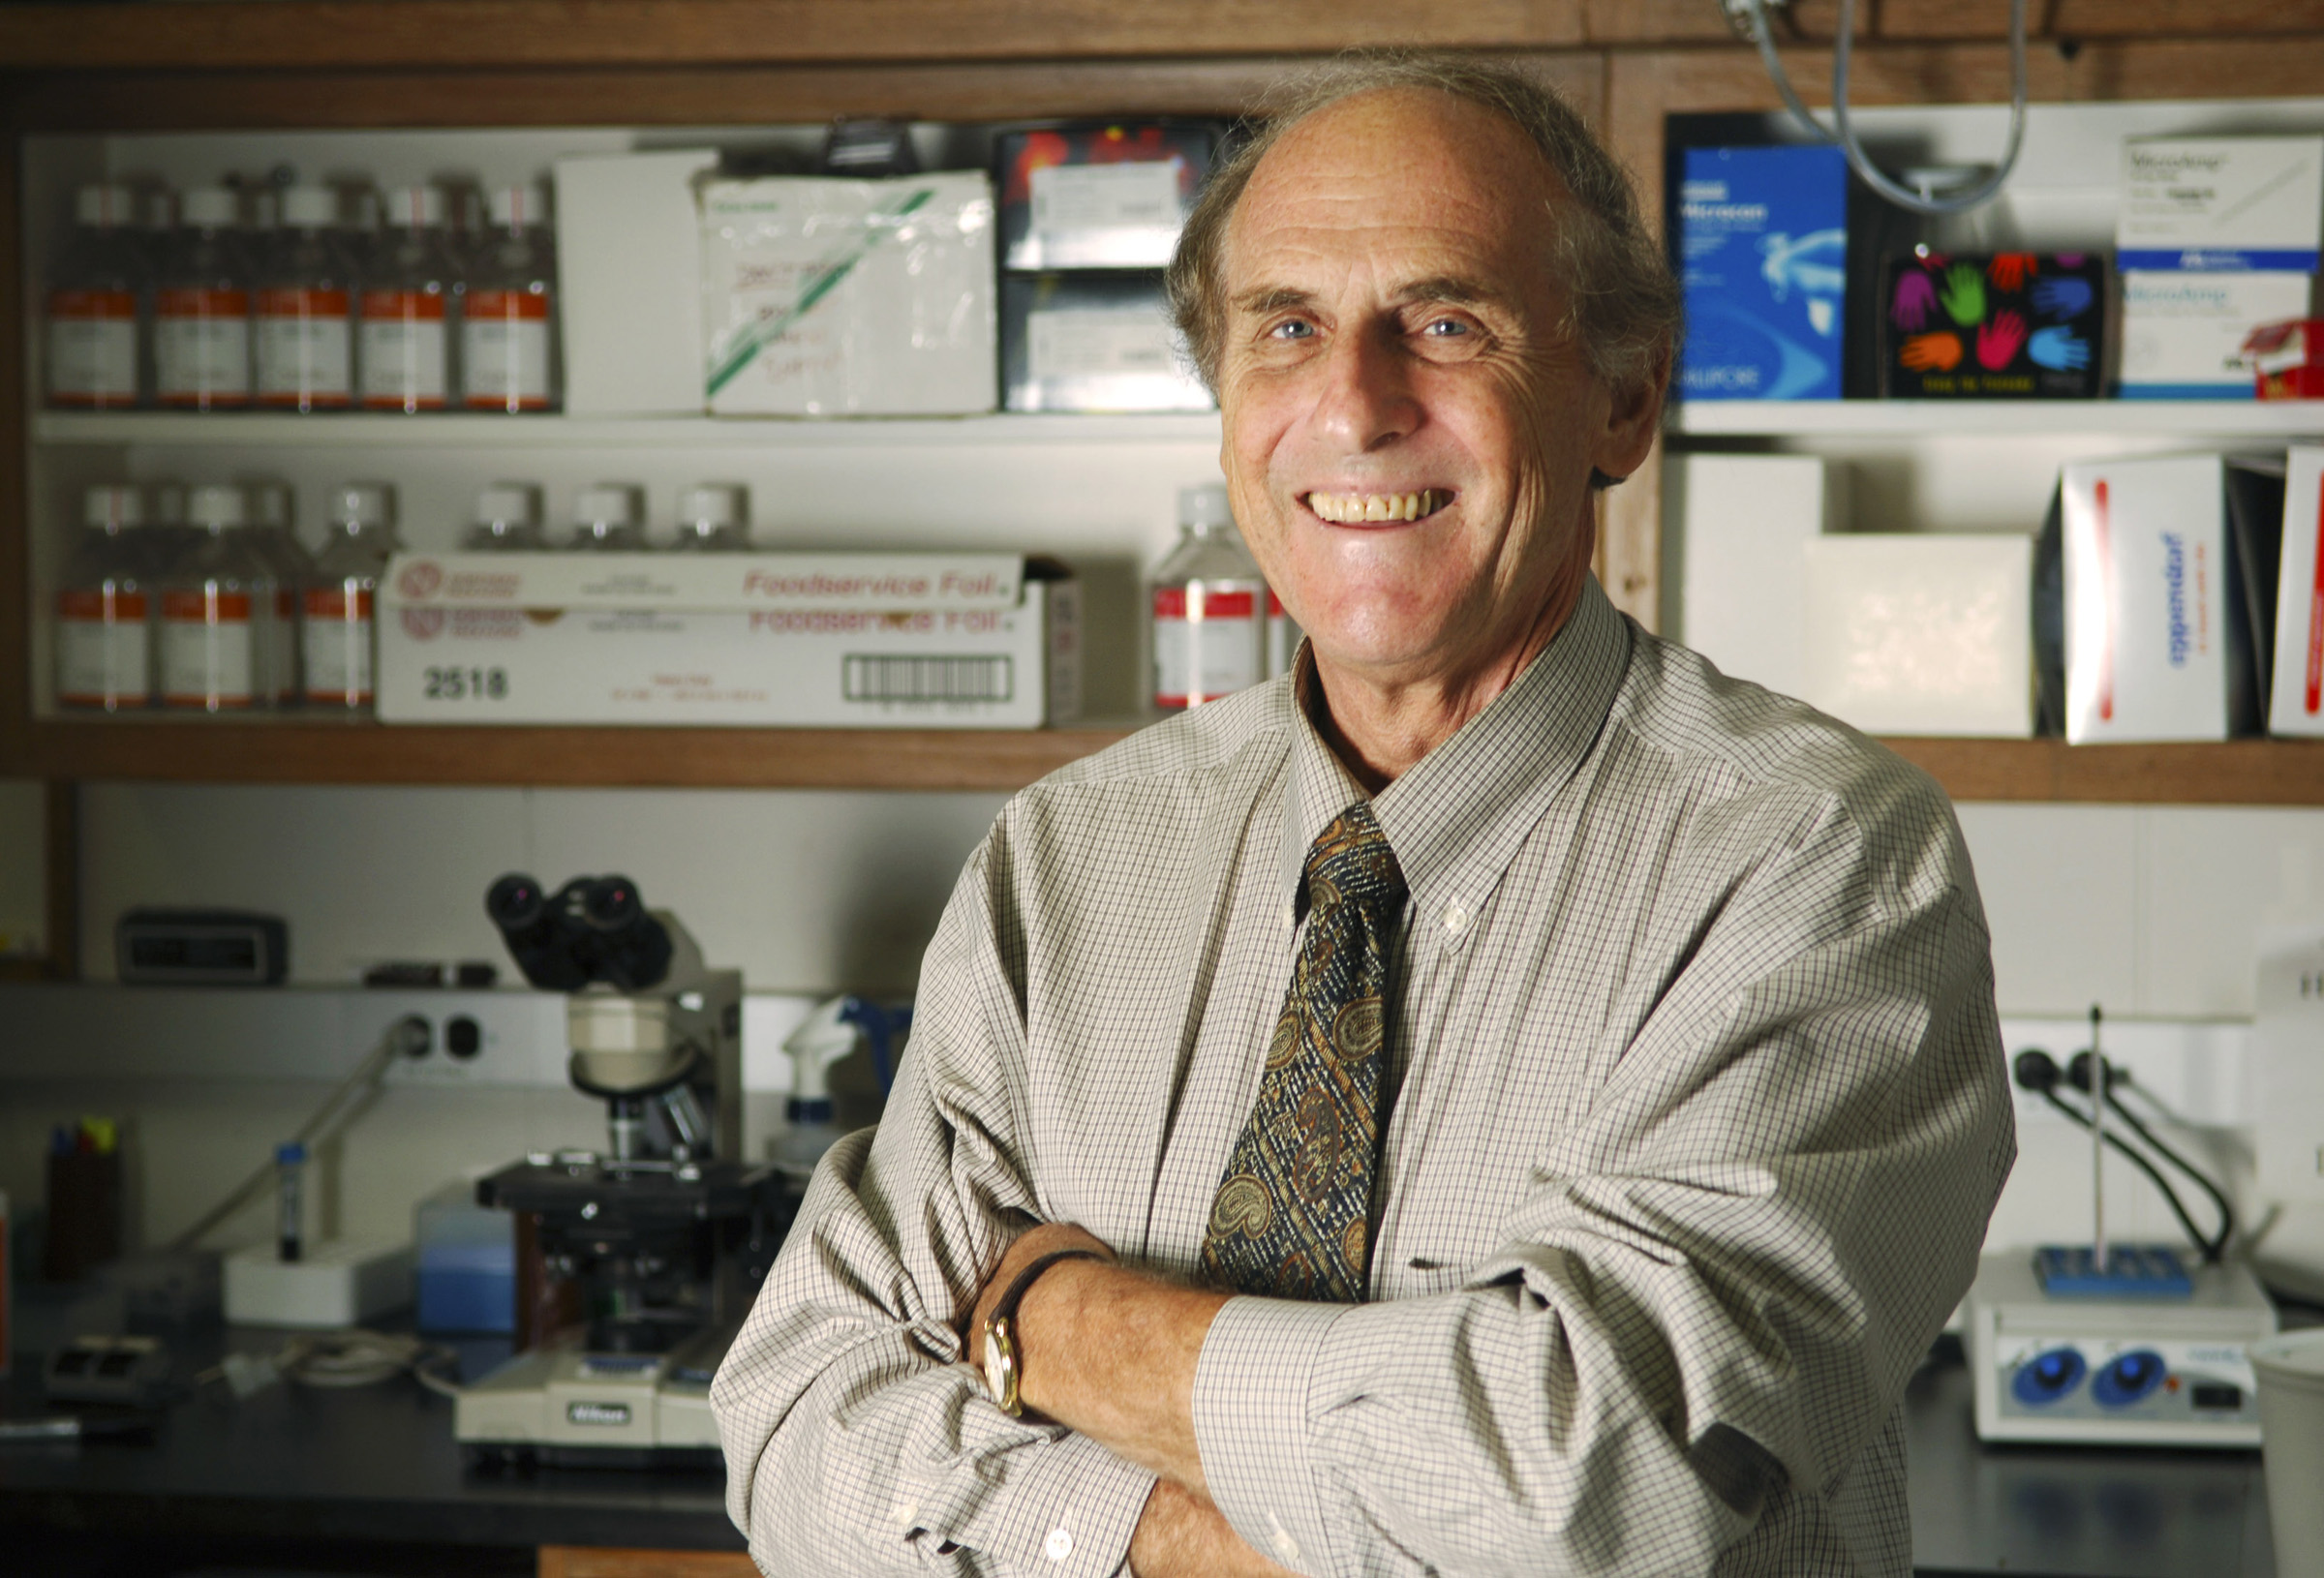 Ralph M. Steinman, an immunologist at Rockefeller University, taken in 2011. Source: Rockefeller University